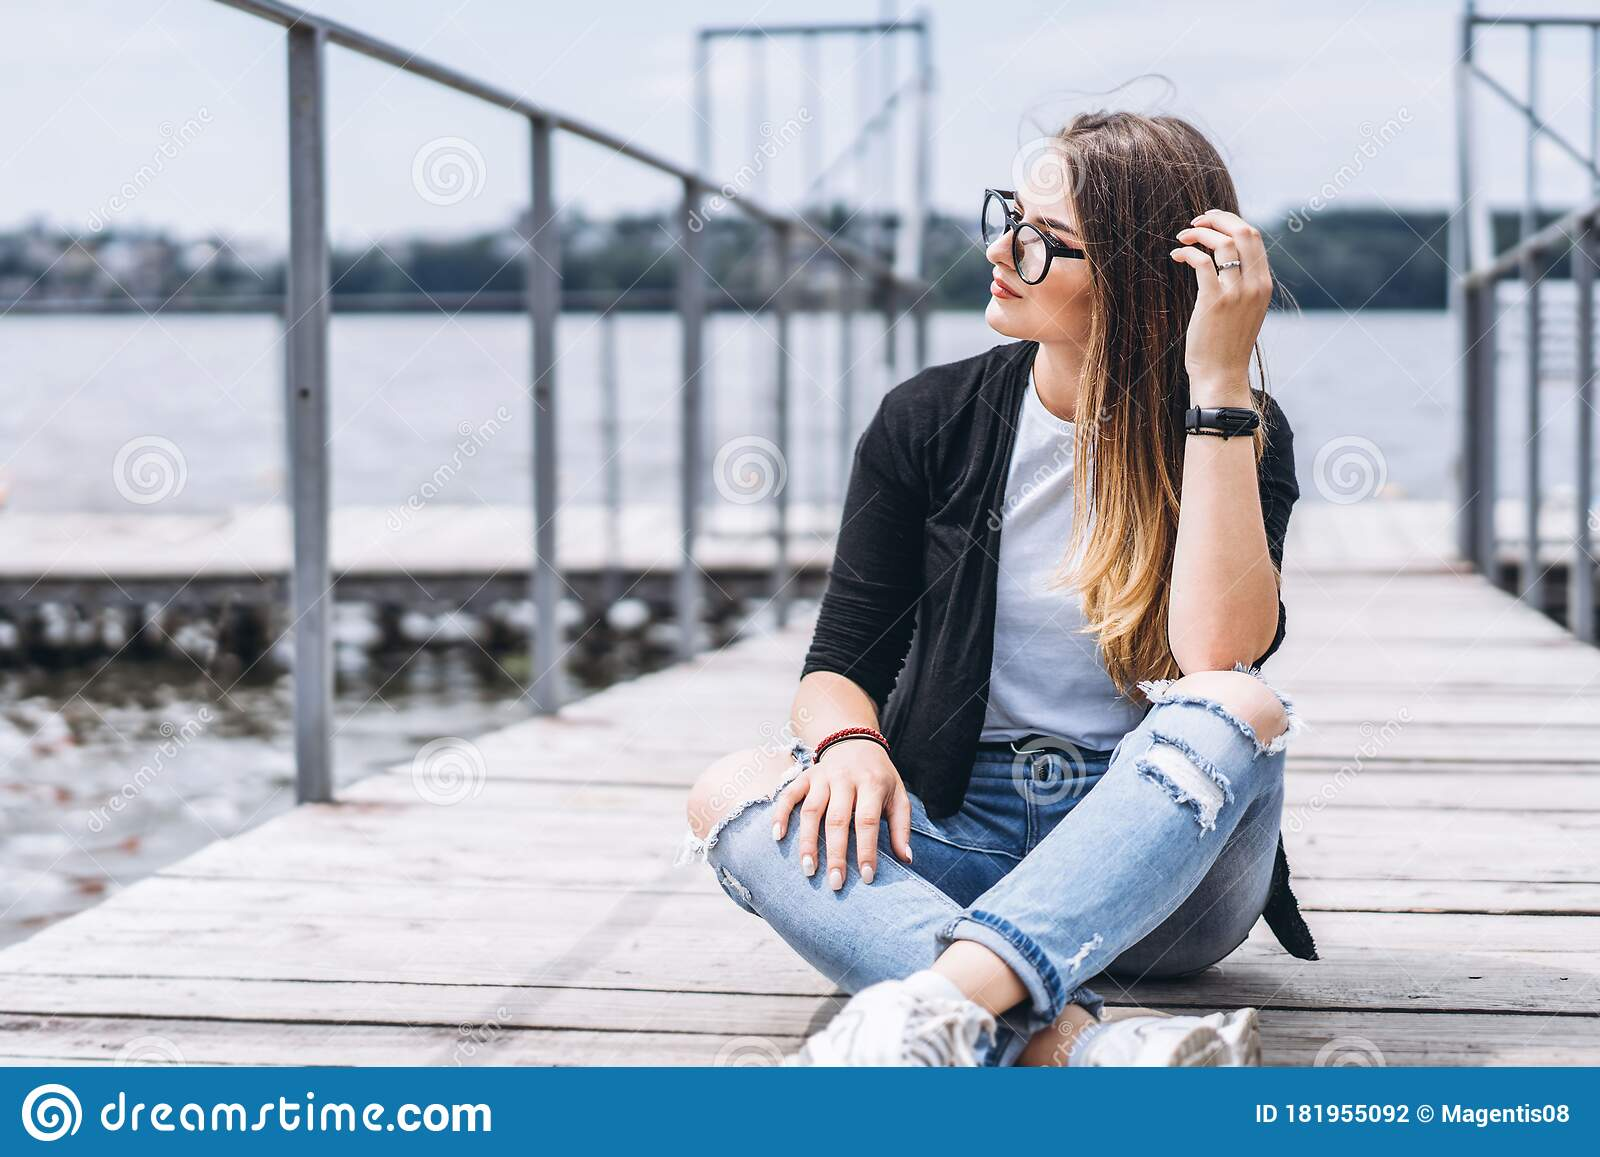 Young Woman With Long Hair In Stylish Glasses Posing On